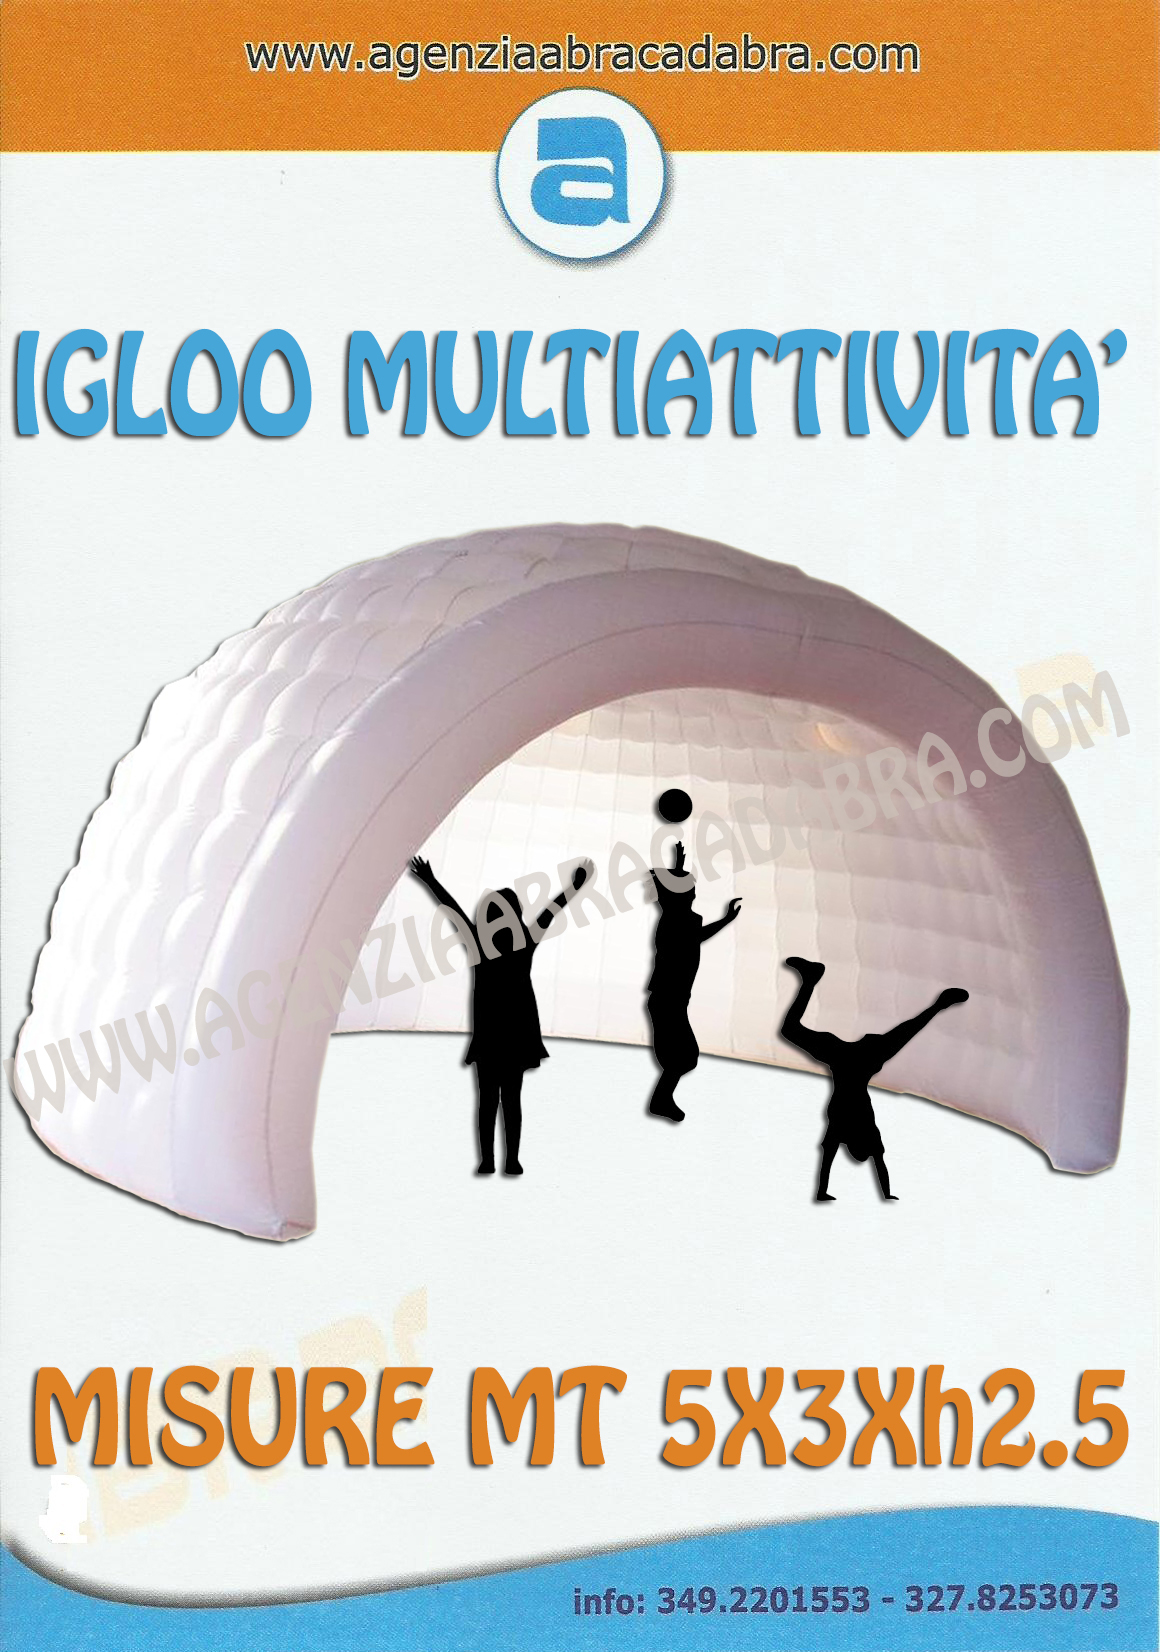 igloo-multiattivita